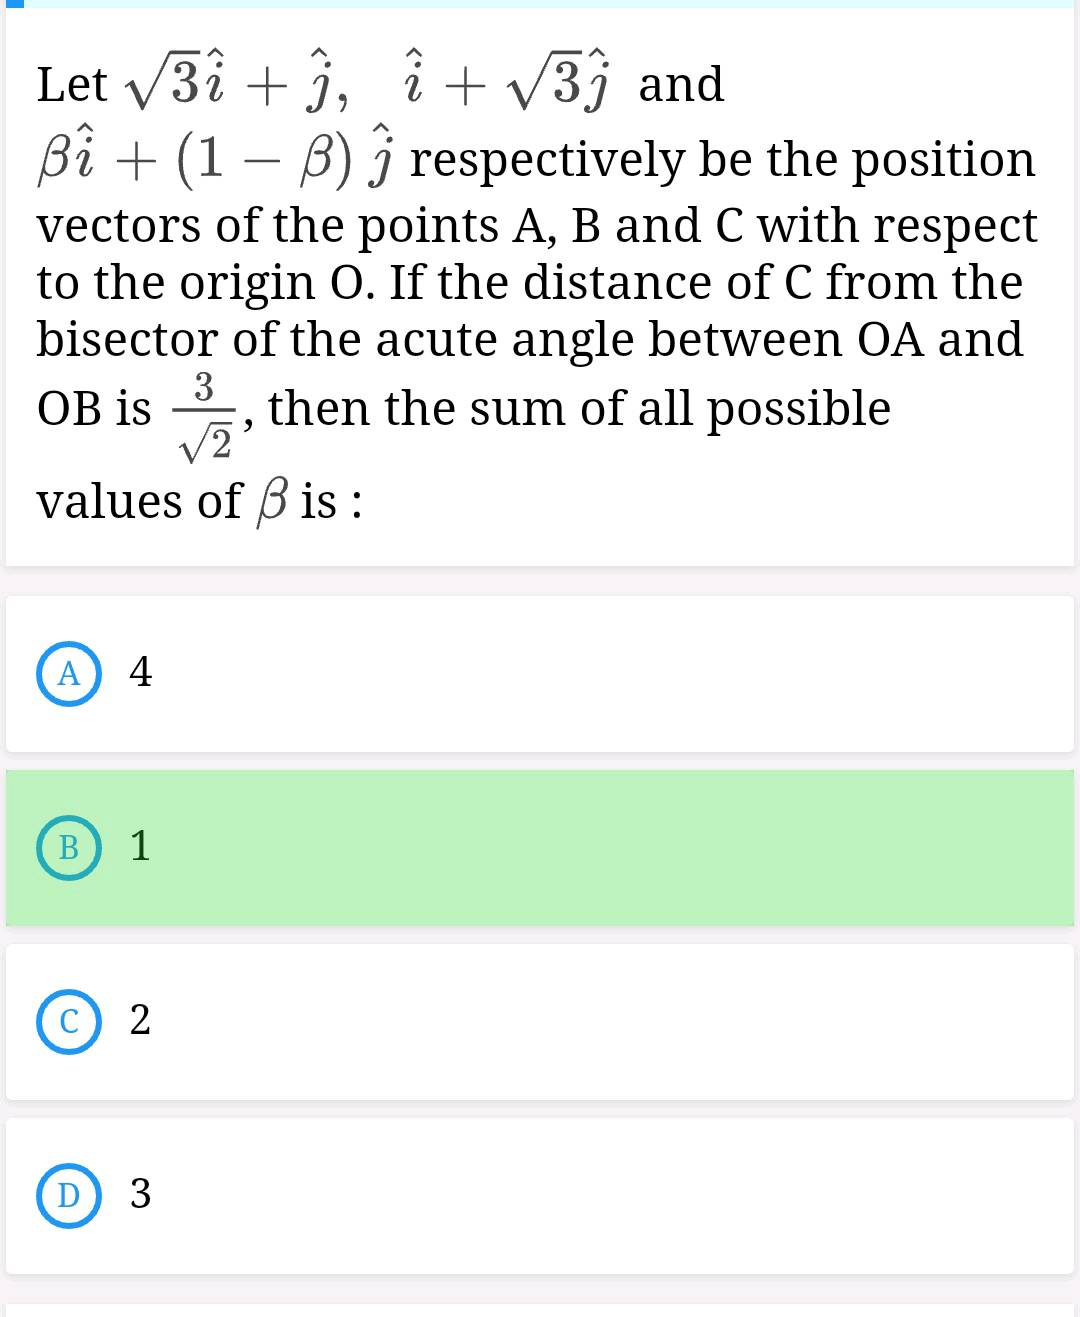 Abcd Is A Quadrilateral E Is The Point Of Intersection Of The Line Joining The Midpoints Of The Opposite Sides If O Is Any Point And O A O B O C